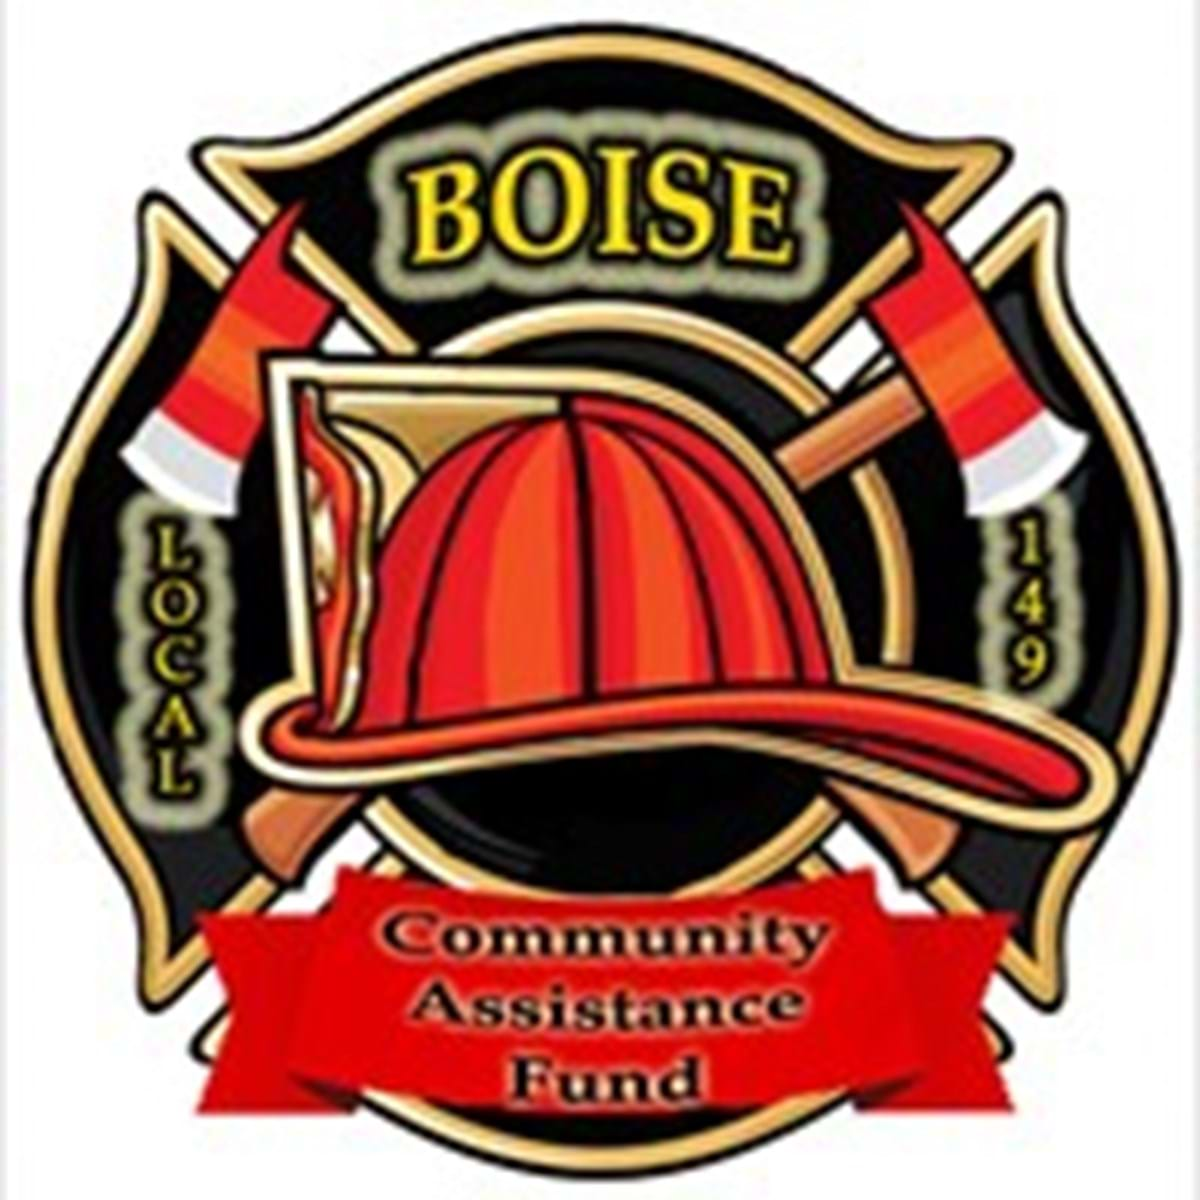 Logo that features a large fire fighter helmet and words Boise Local 149 Community Assistance Fund